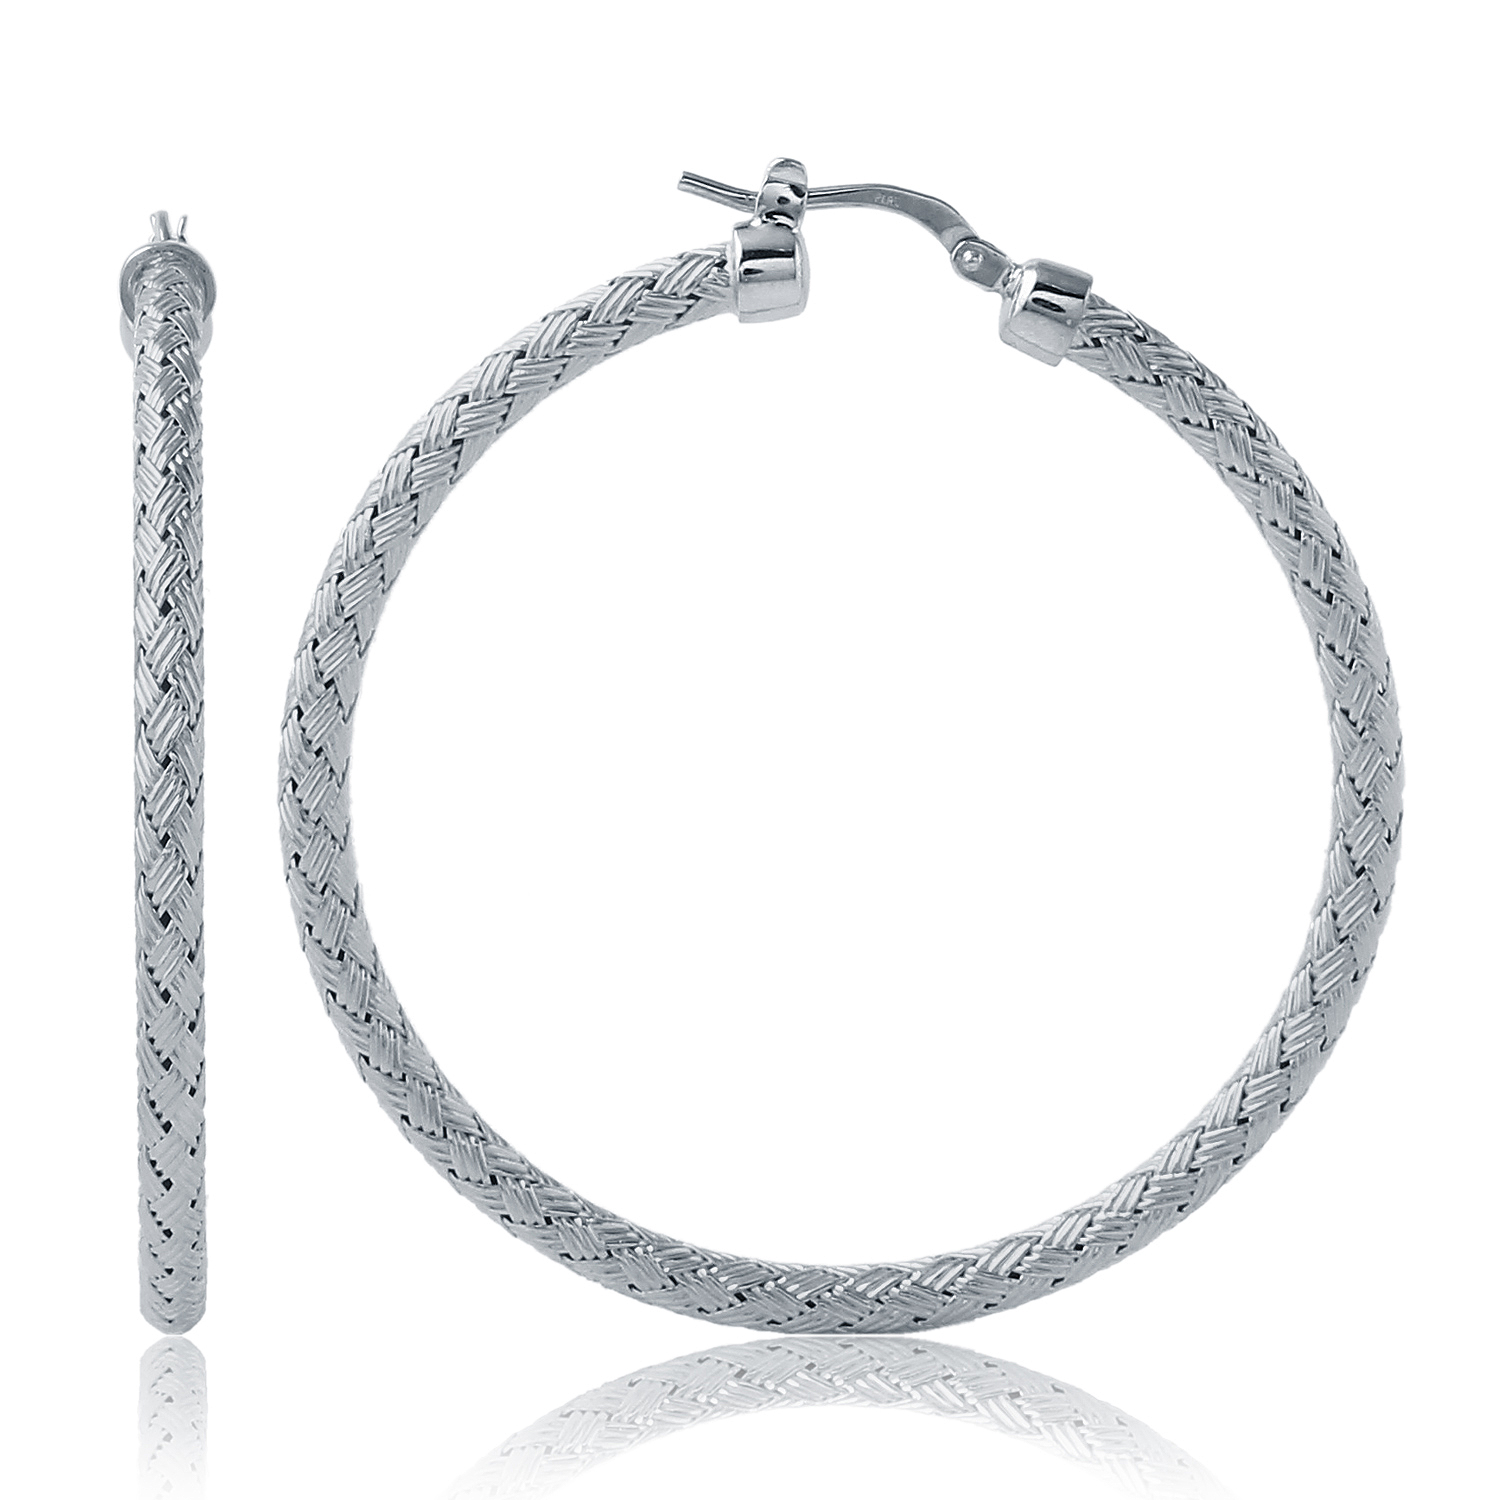 CHARLES GARNIER - Sterling Silver Hoop Earrings, 45mm